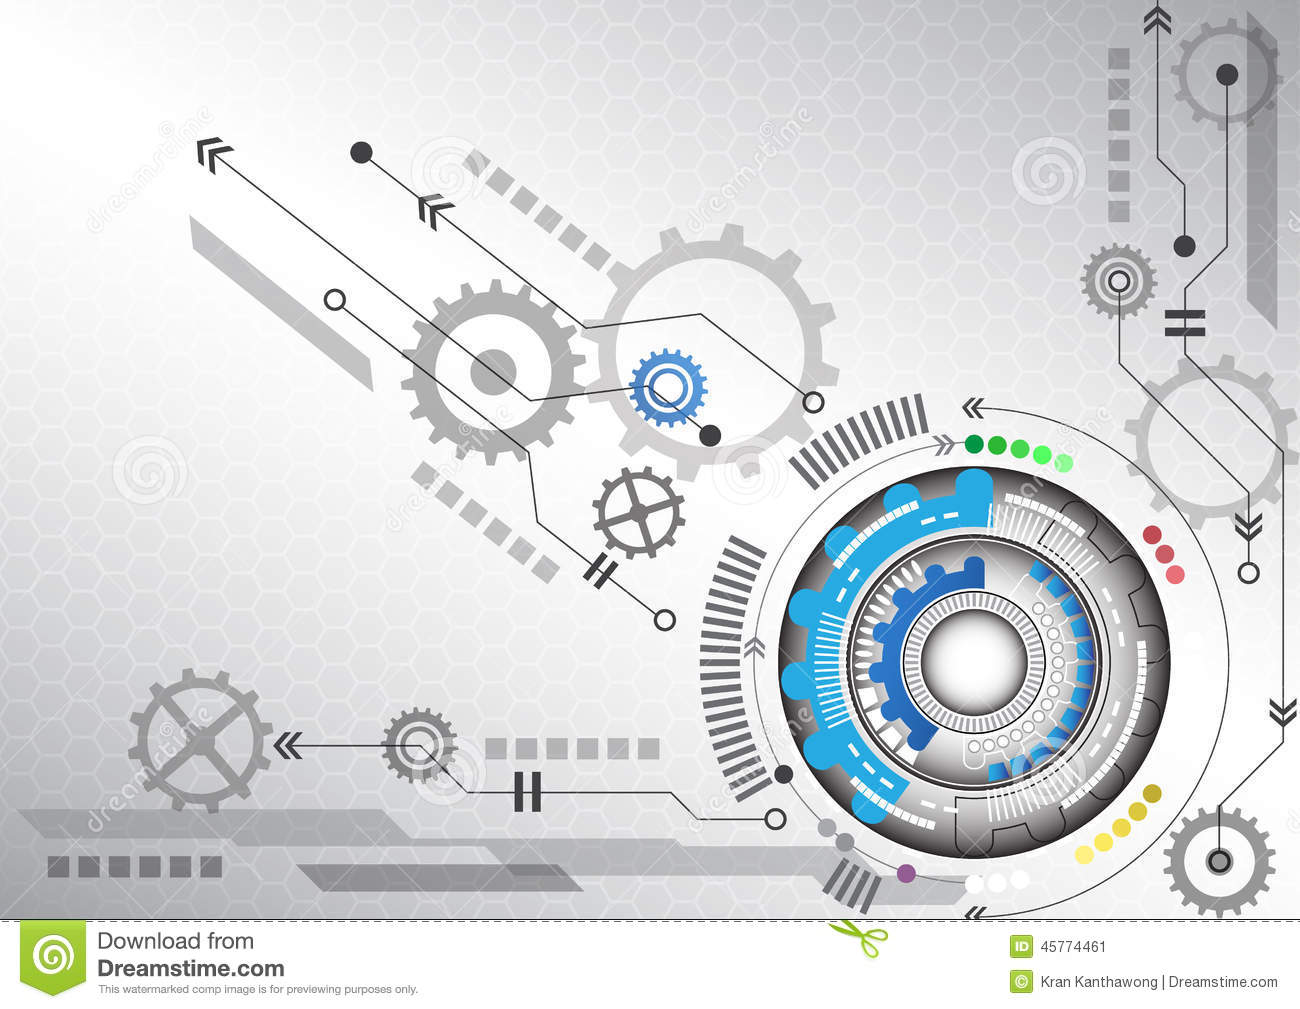 https://thumbs.dreamstime.com/z/abstract-futuristic-circuit-high-computer-technology-business-background-vector-illustration-innovation-45774461.jpg